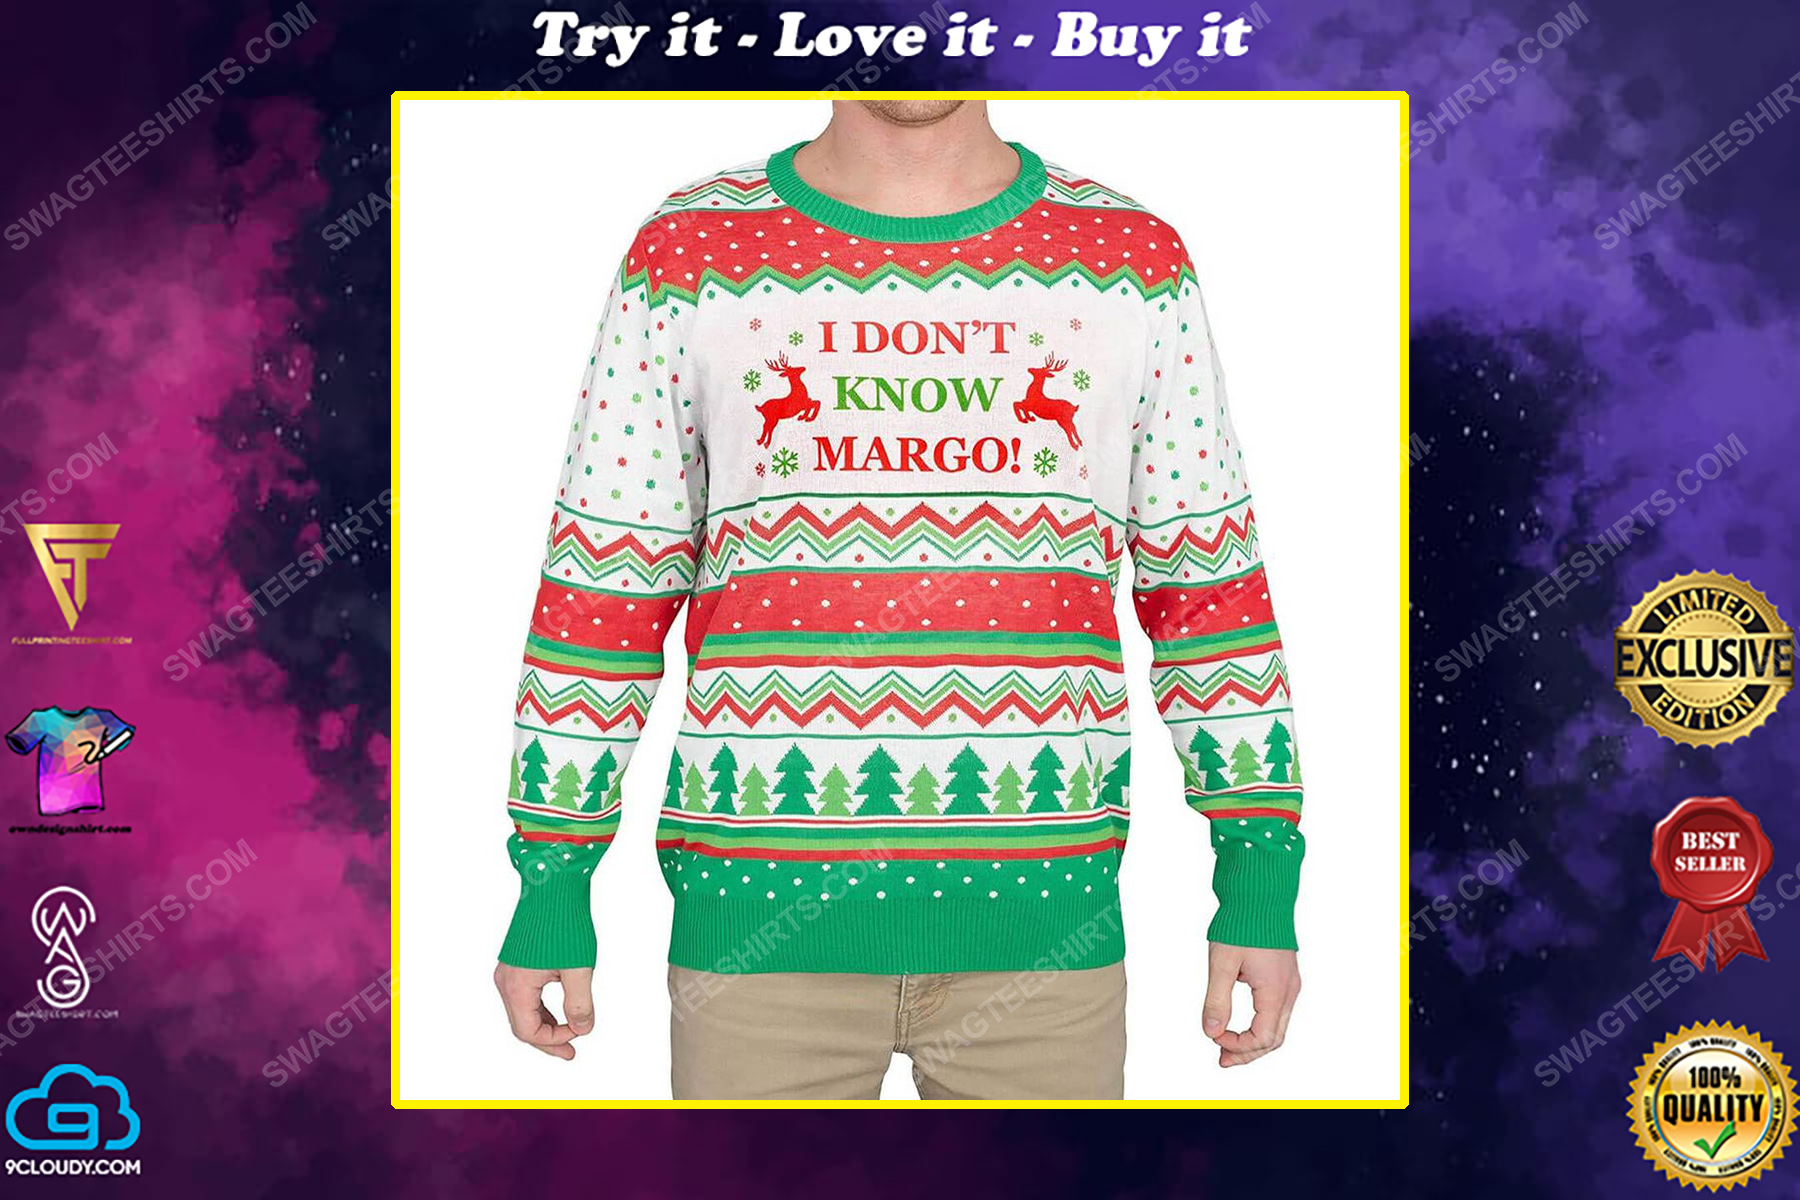 I don't know margo full print ugly christmas sweater